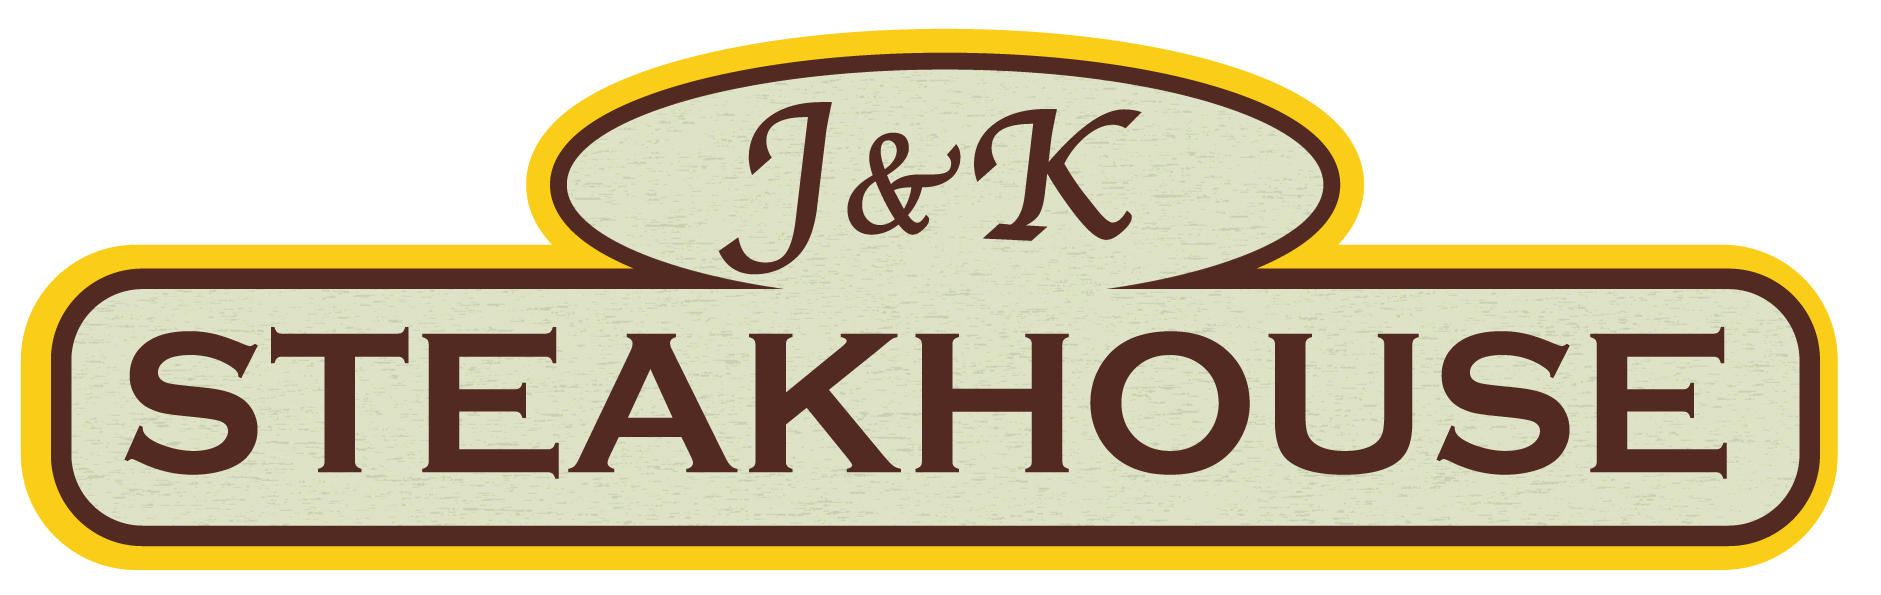 J & K Steakhouse